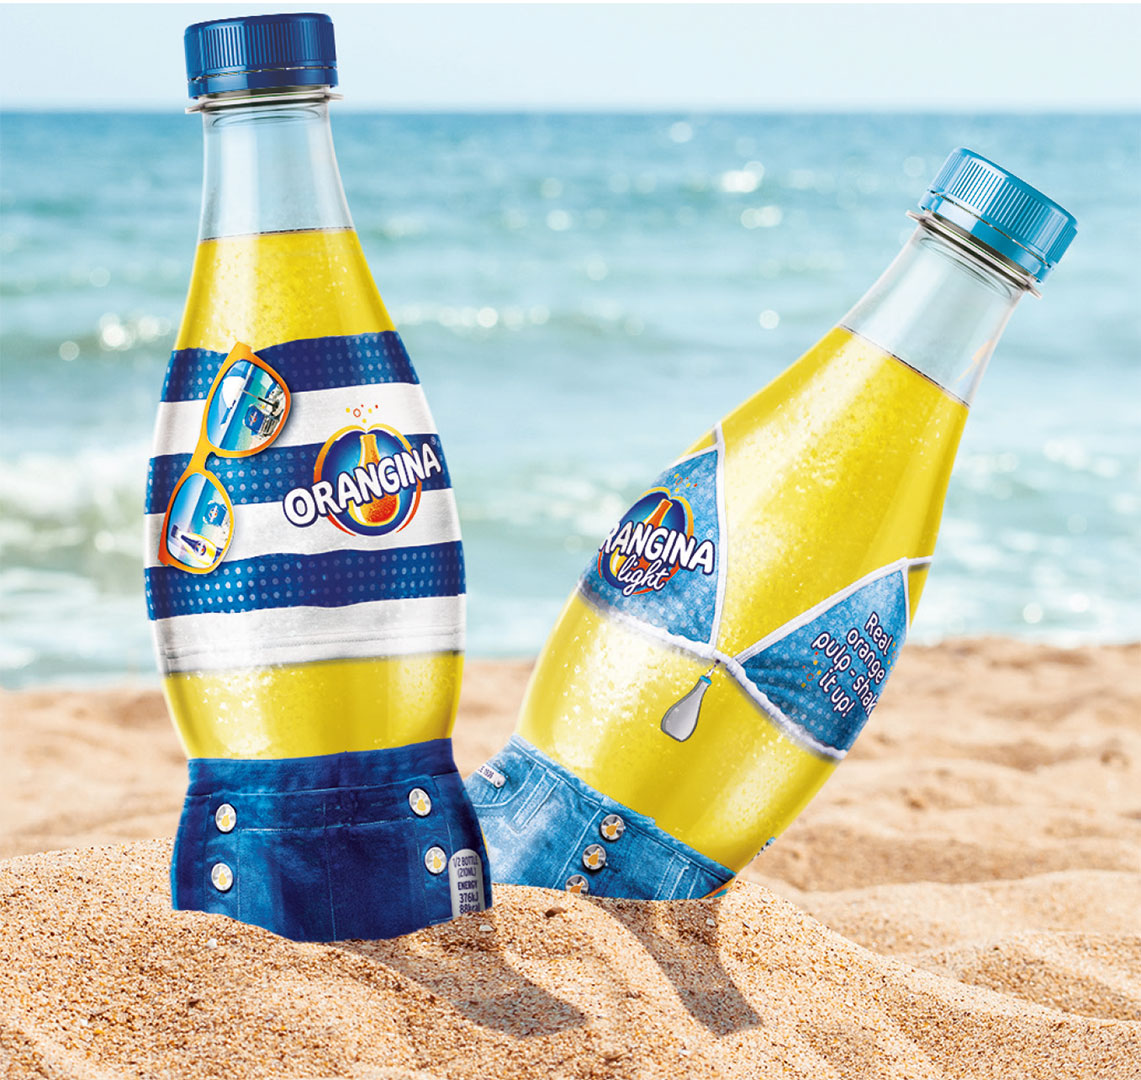 Orangina Bottles In Sand